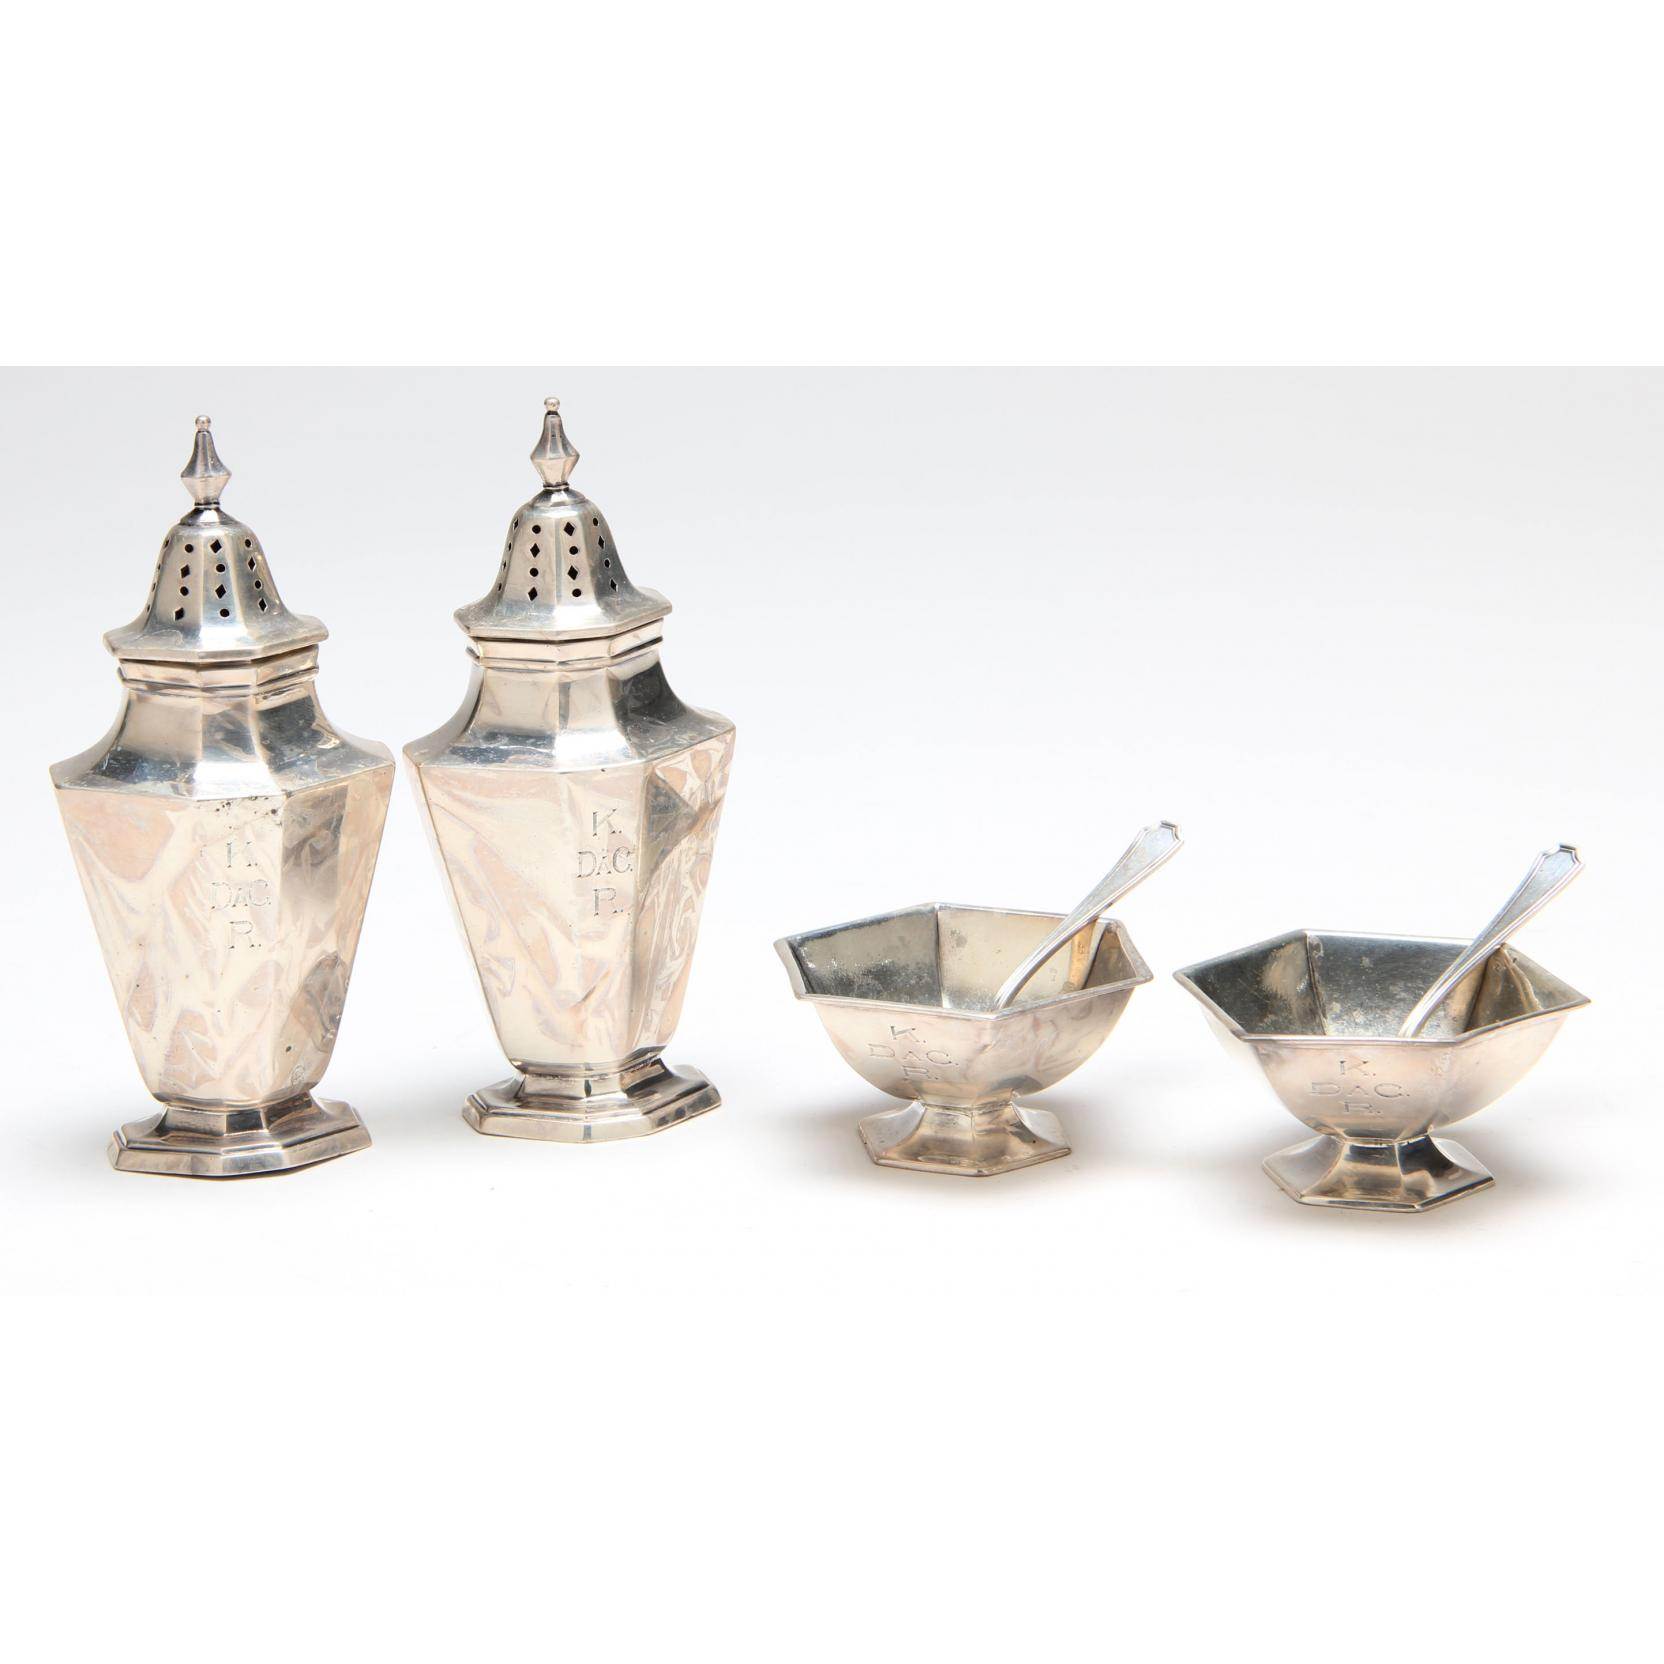 american-sterling-silver-tablewares